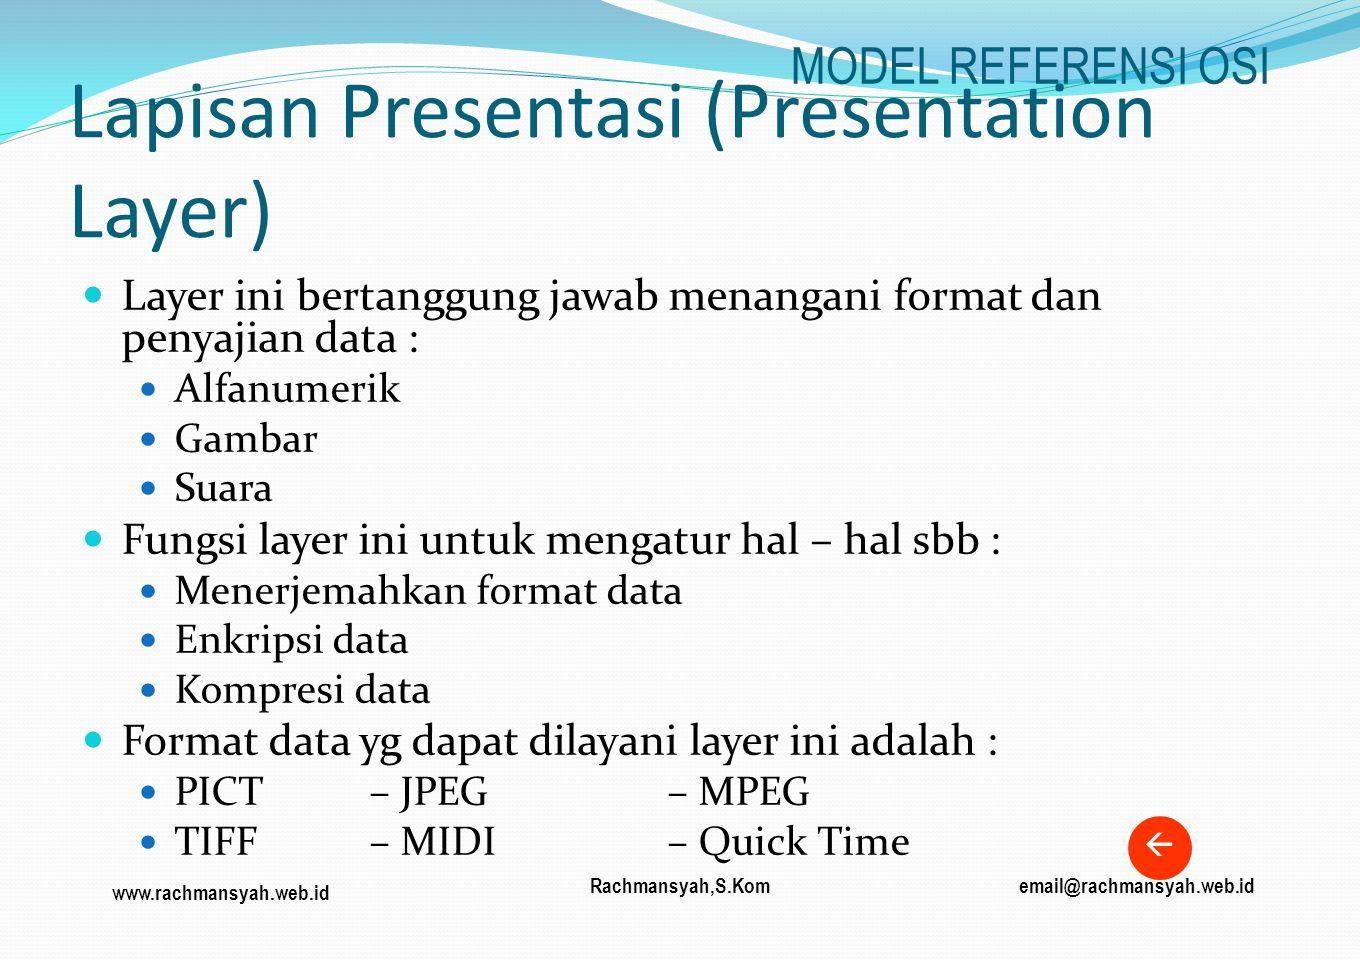 Lapisan Presentasi (Presentation Layer)